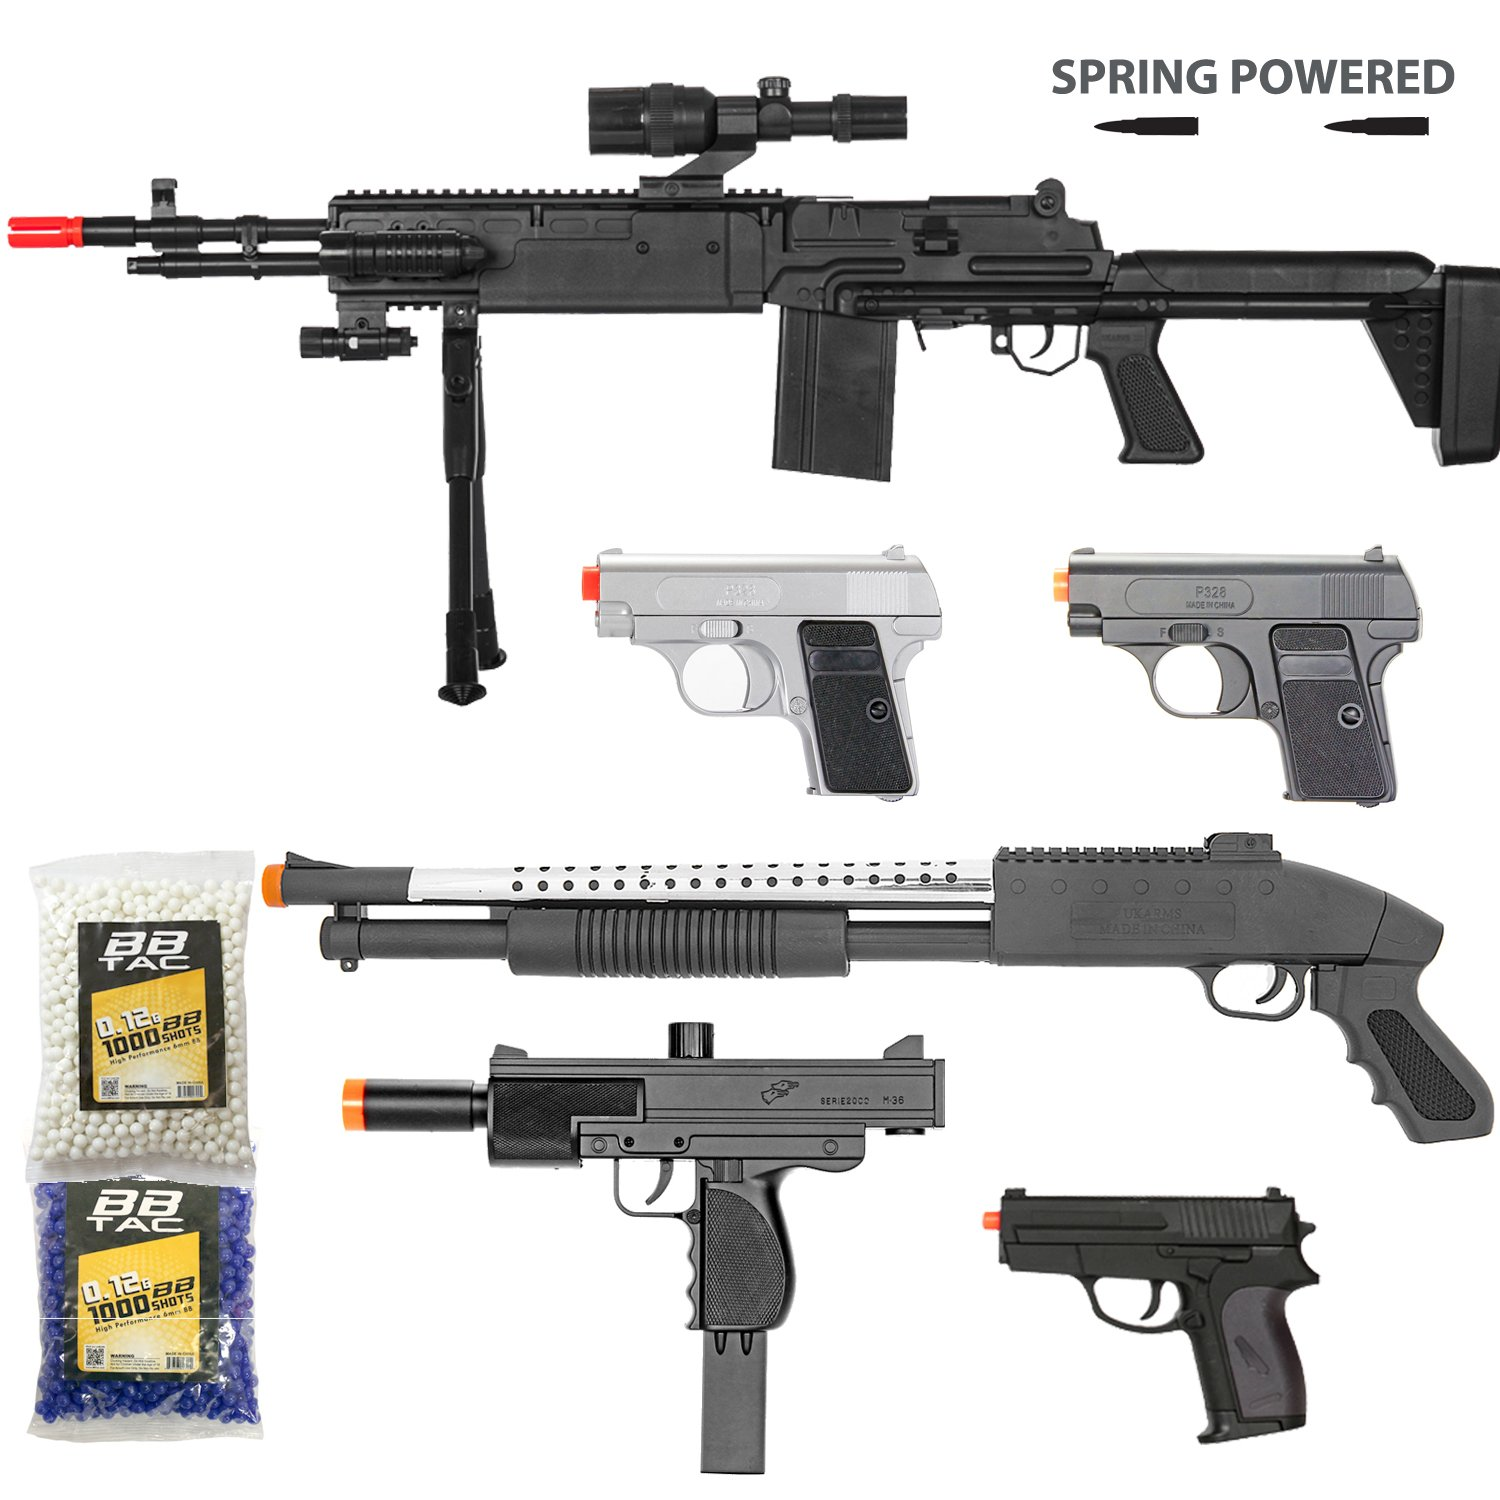 Buy BBTac Airsoft Gun Package - Rebels Collection of 5 Airsoft Guns